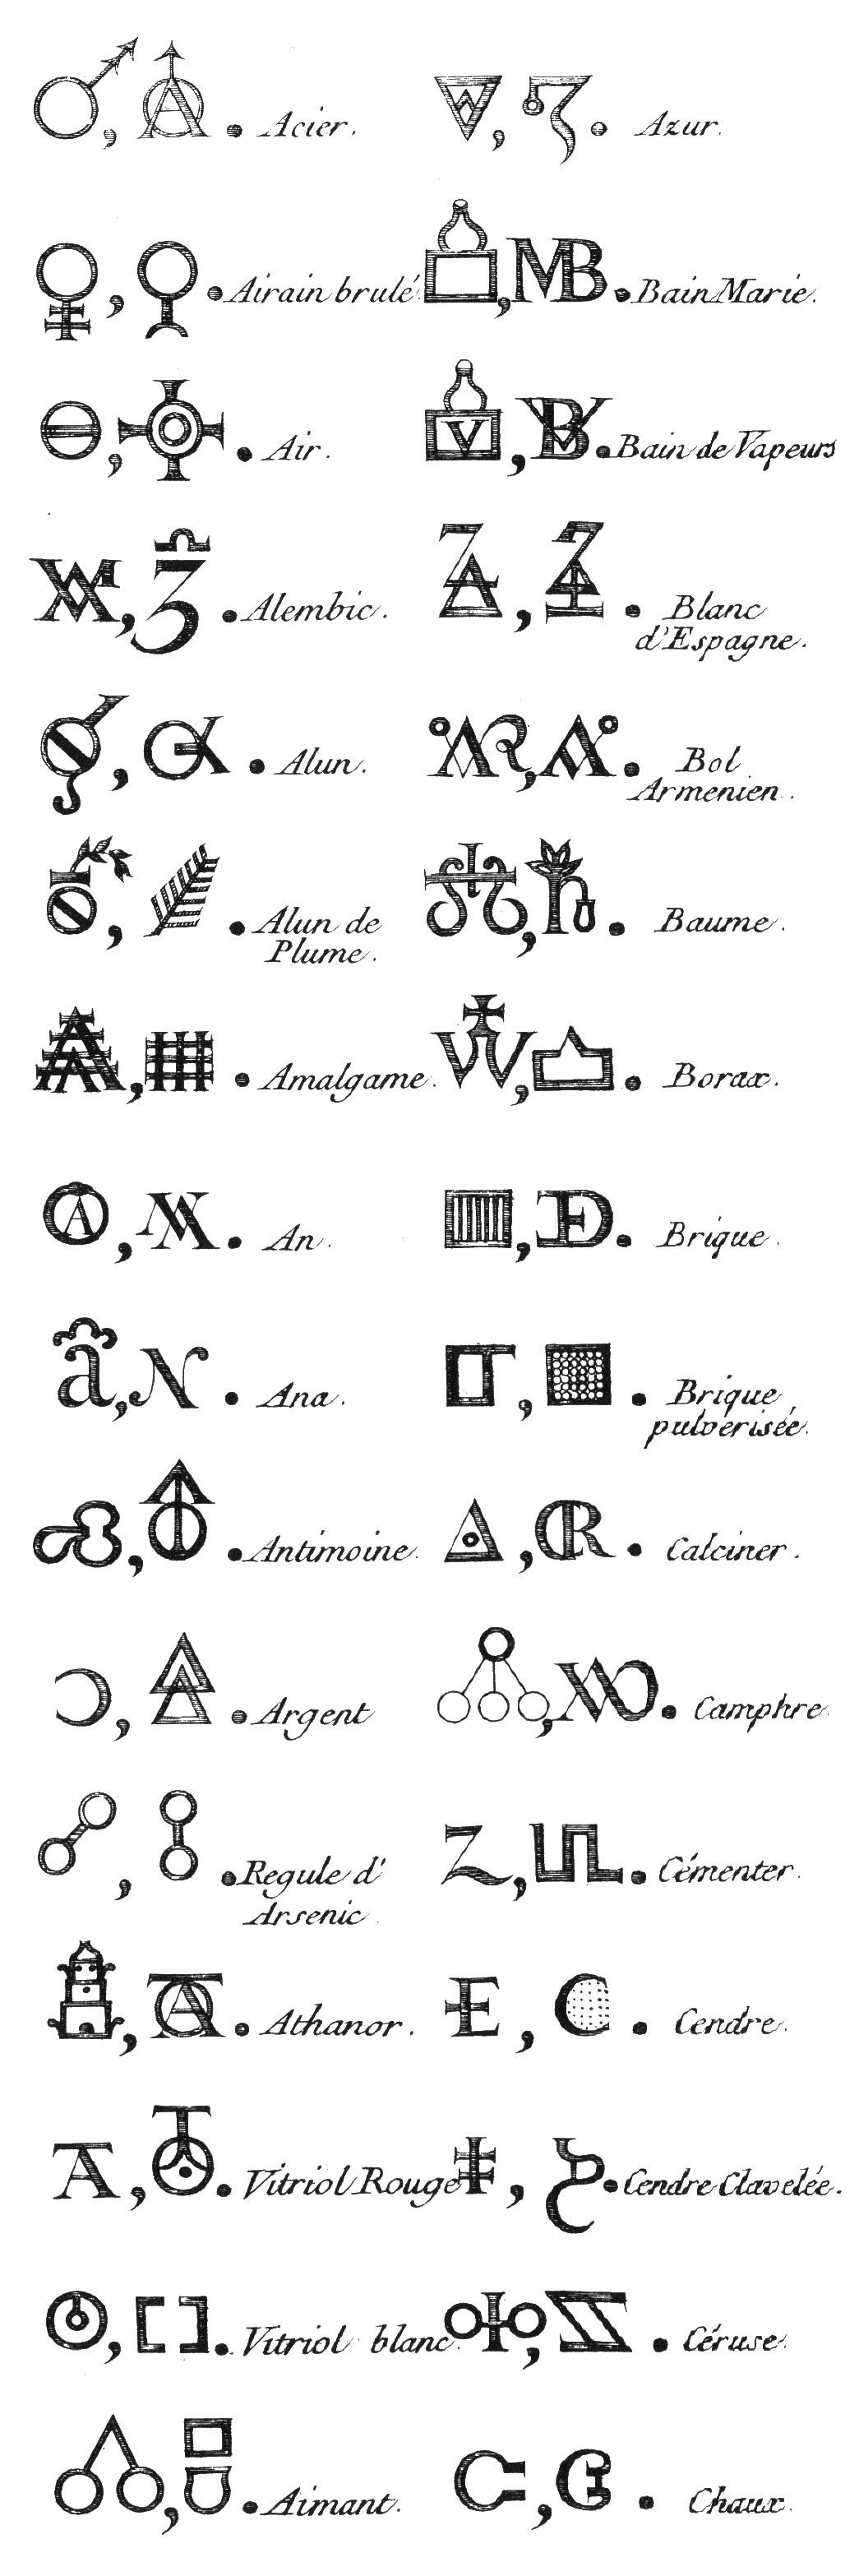 Diderot and dalembert alchemical symbols symbolism diderot and dalembert alchemical symbols biocorpaavc Images